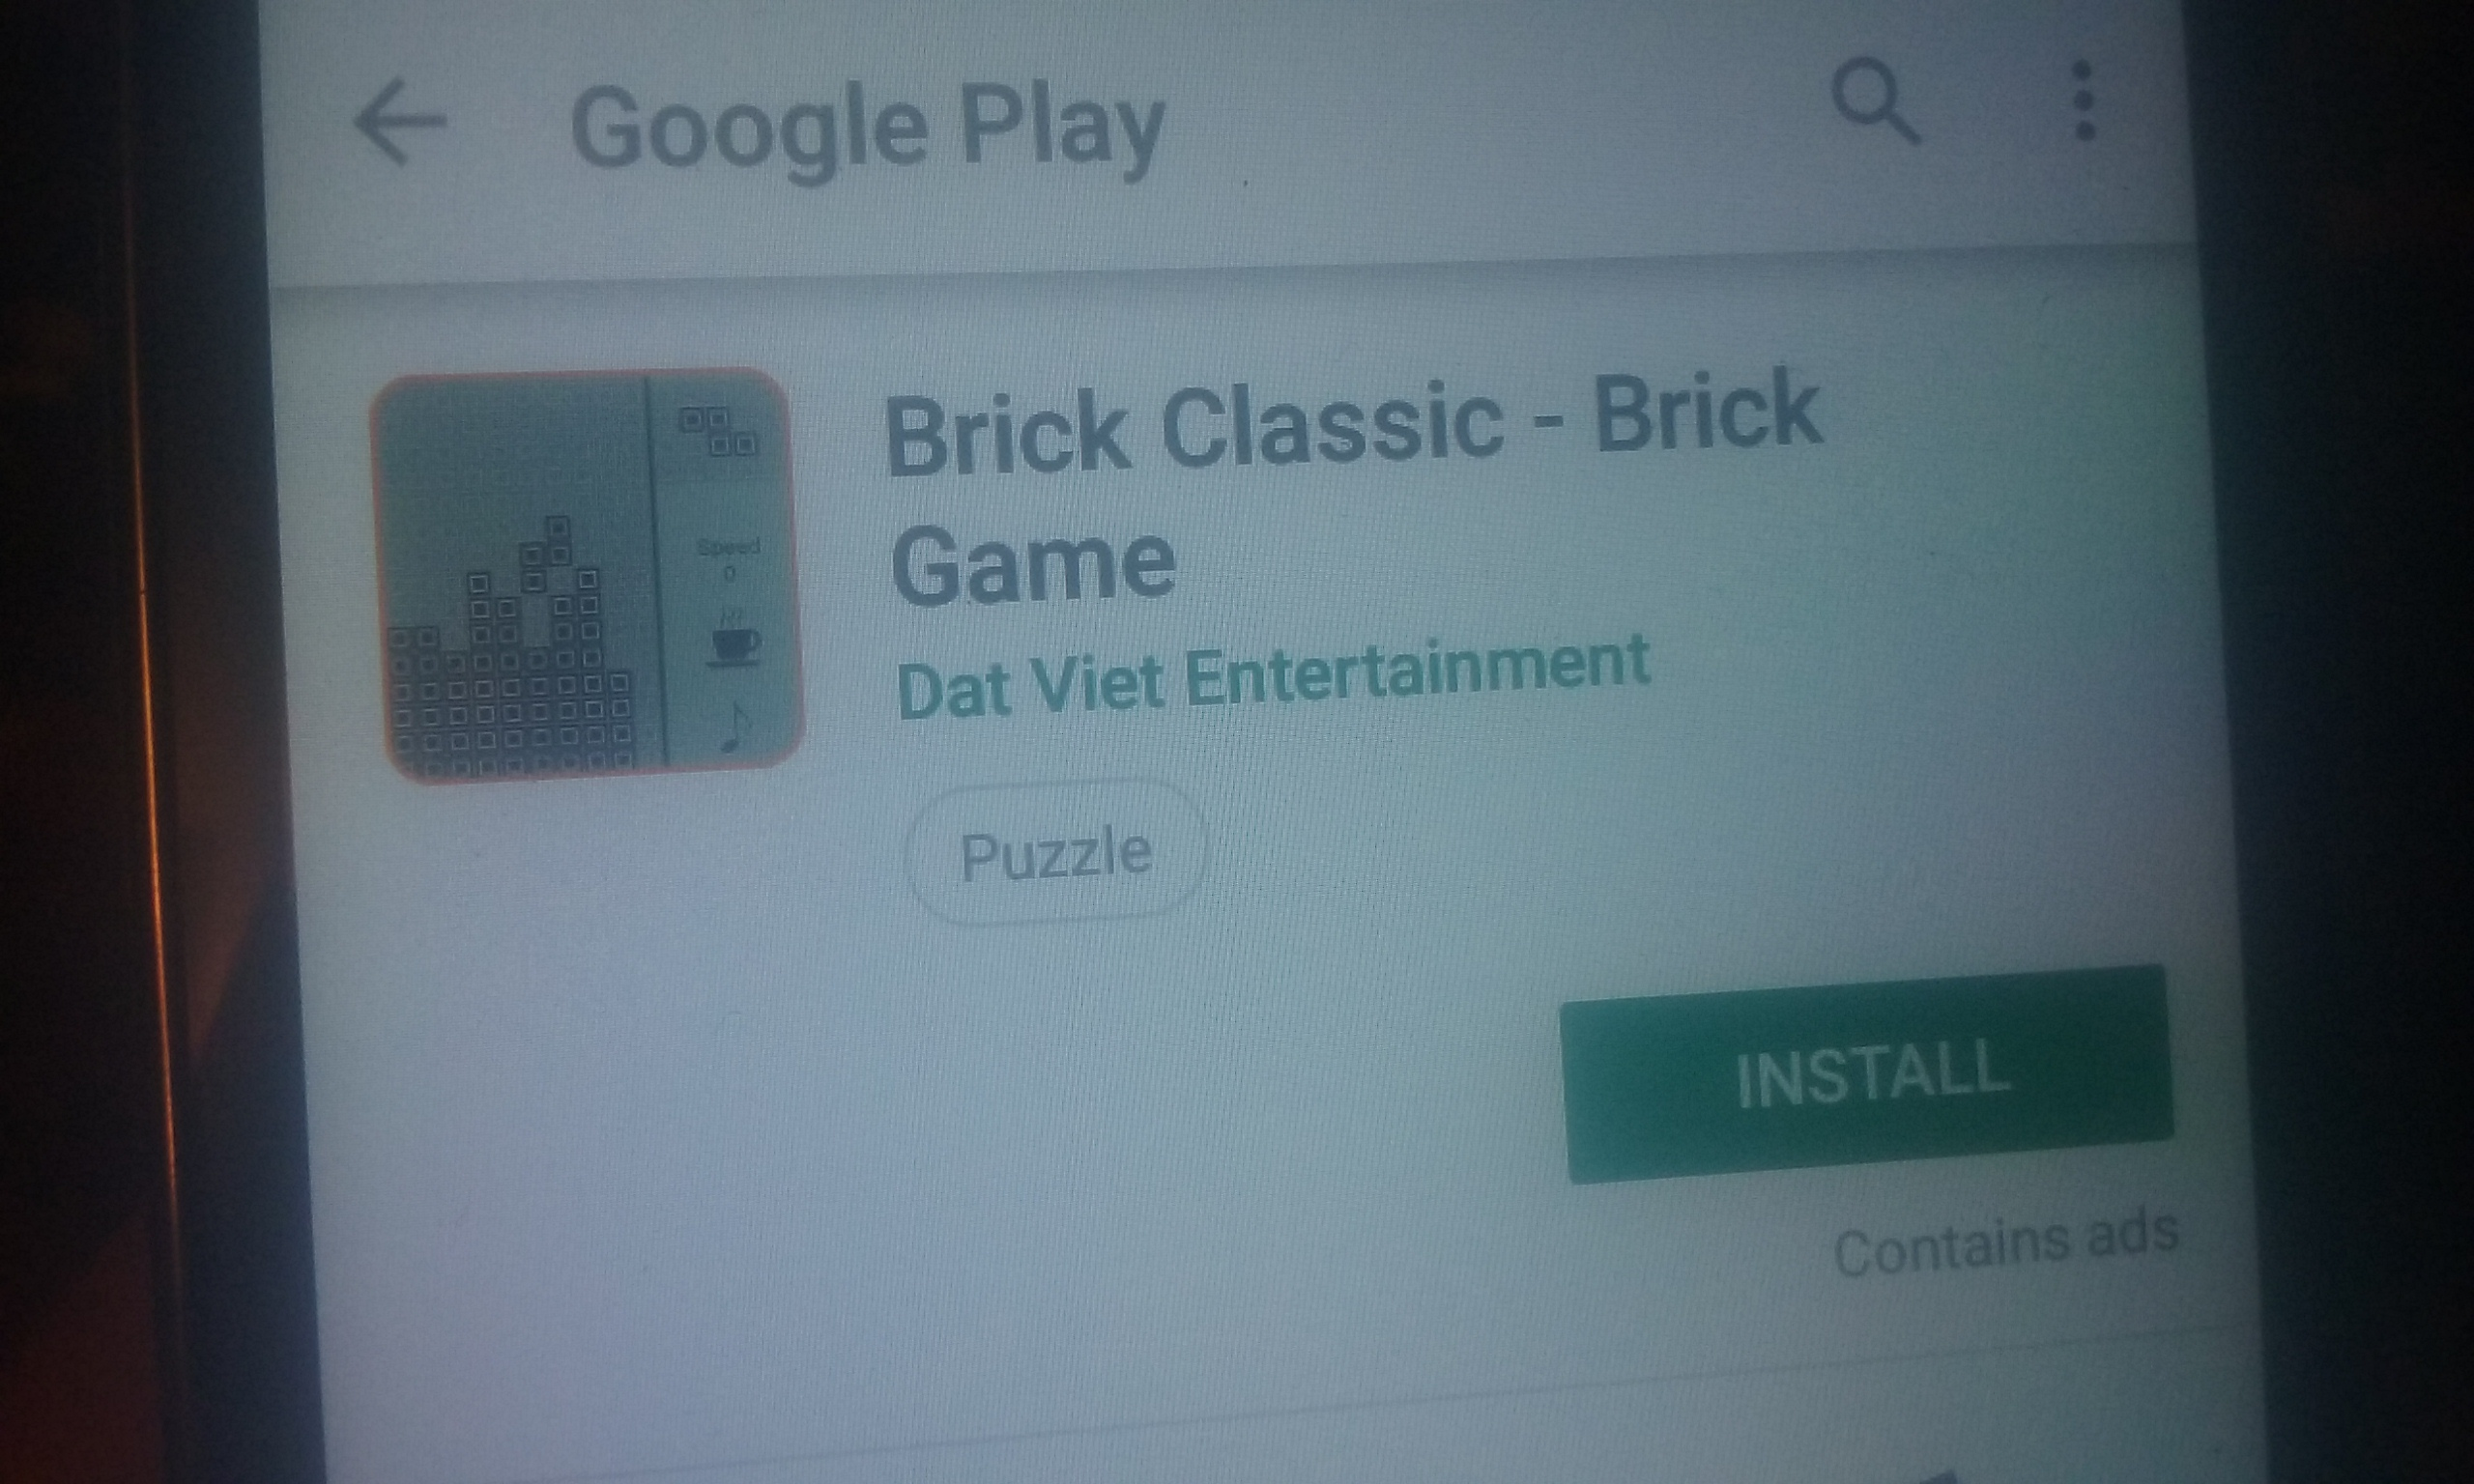 S.BAZ: Brick Classic: Brick Game (Android) 260 points on 2019-11-21 15:41:54